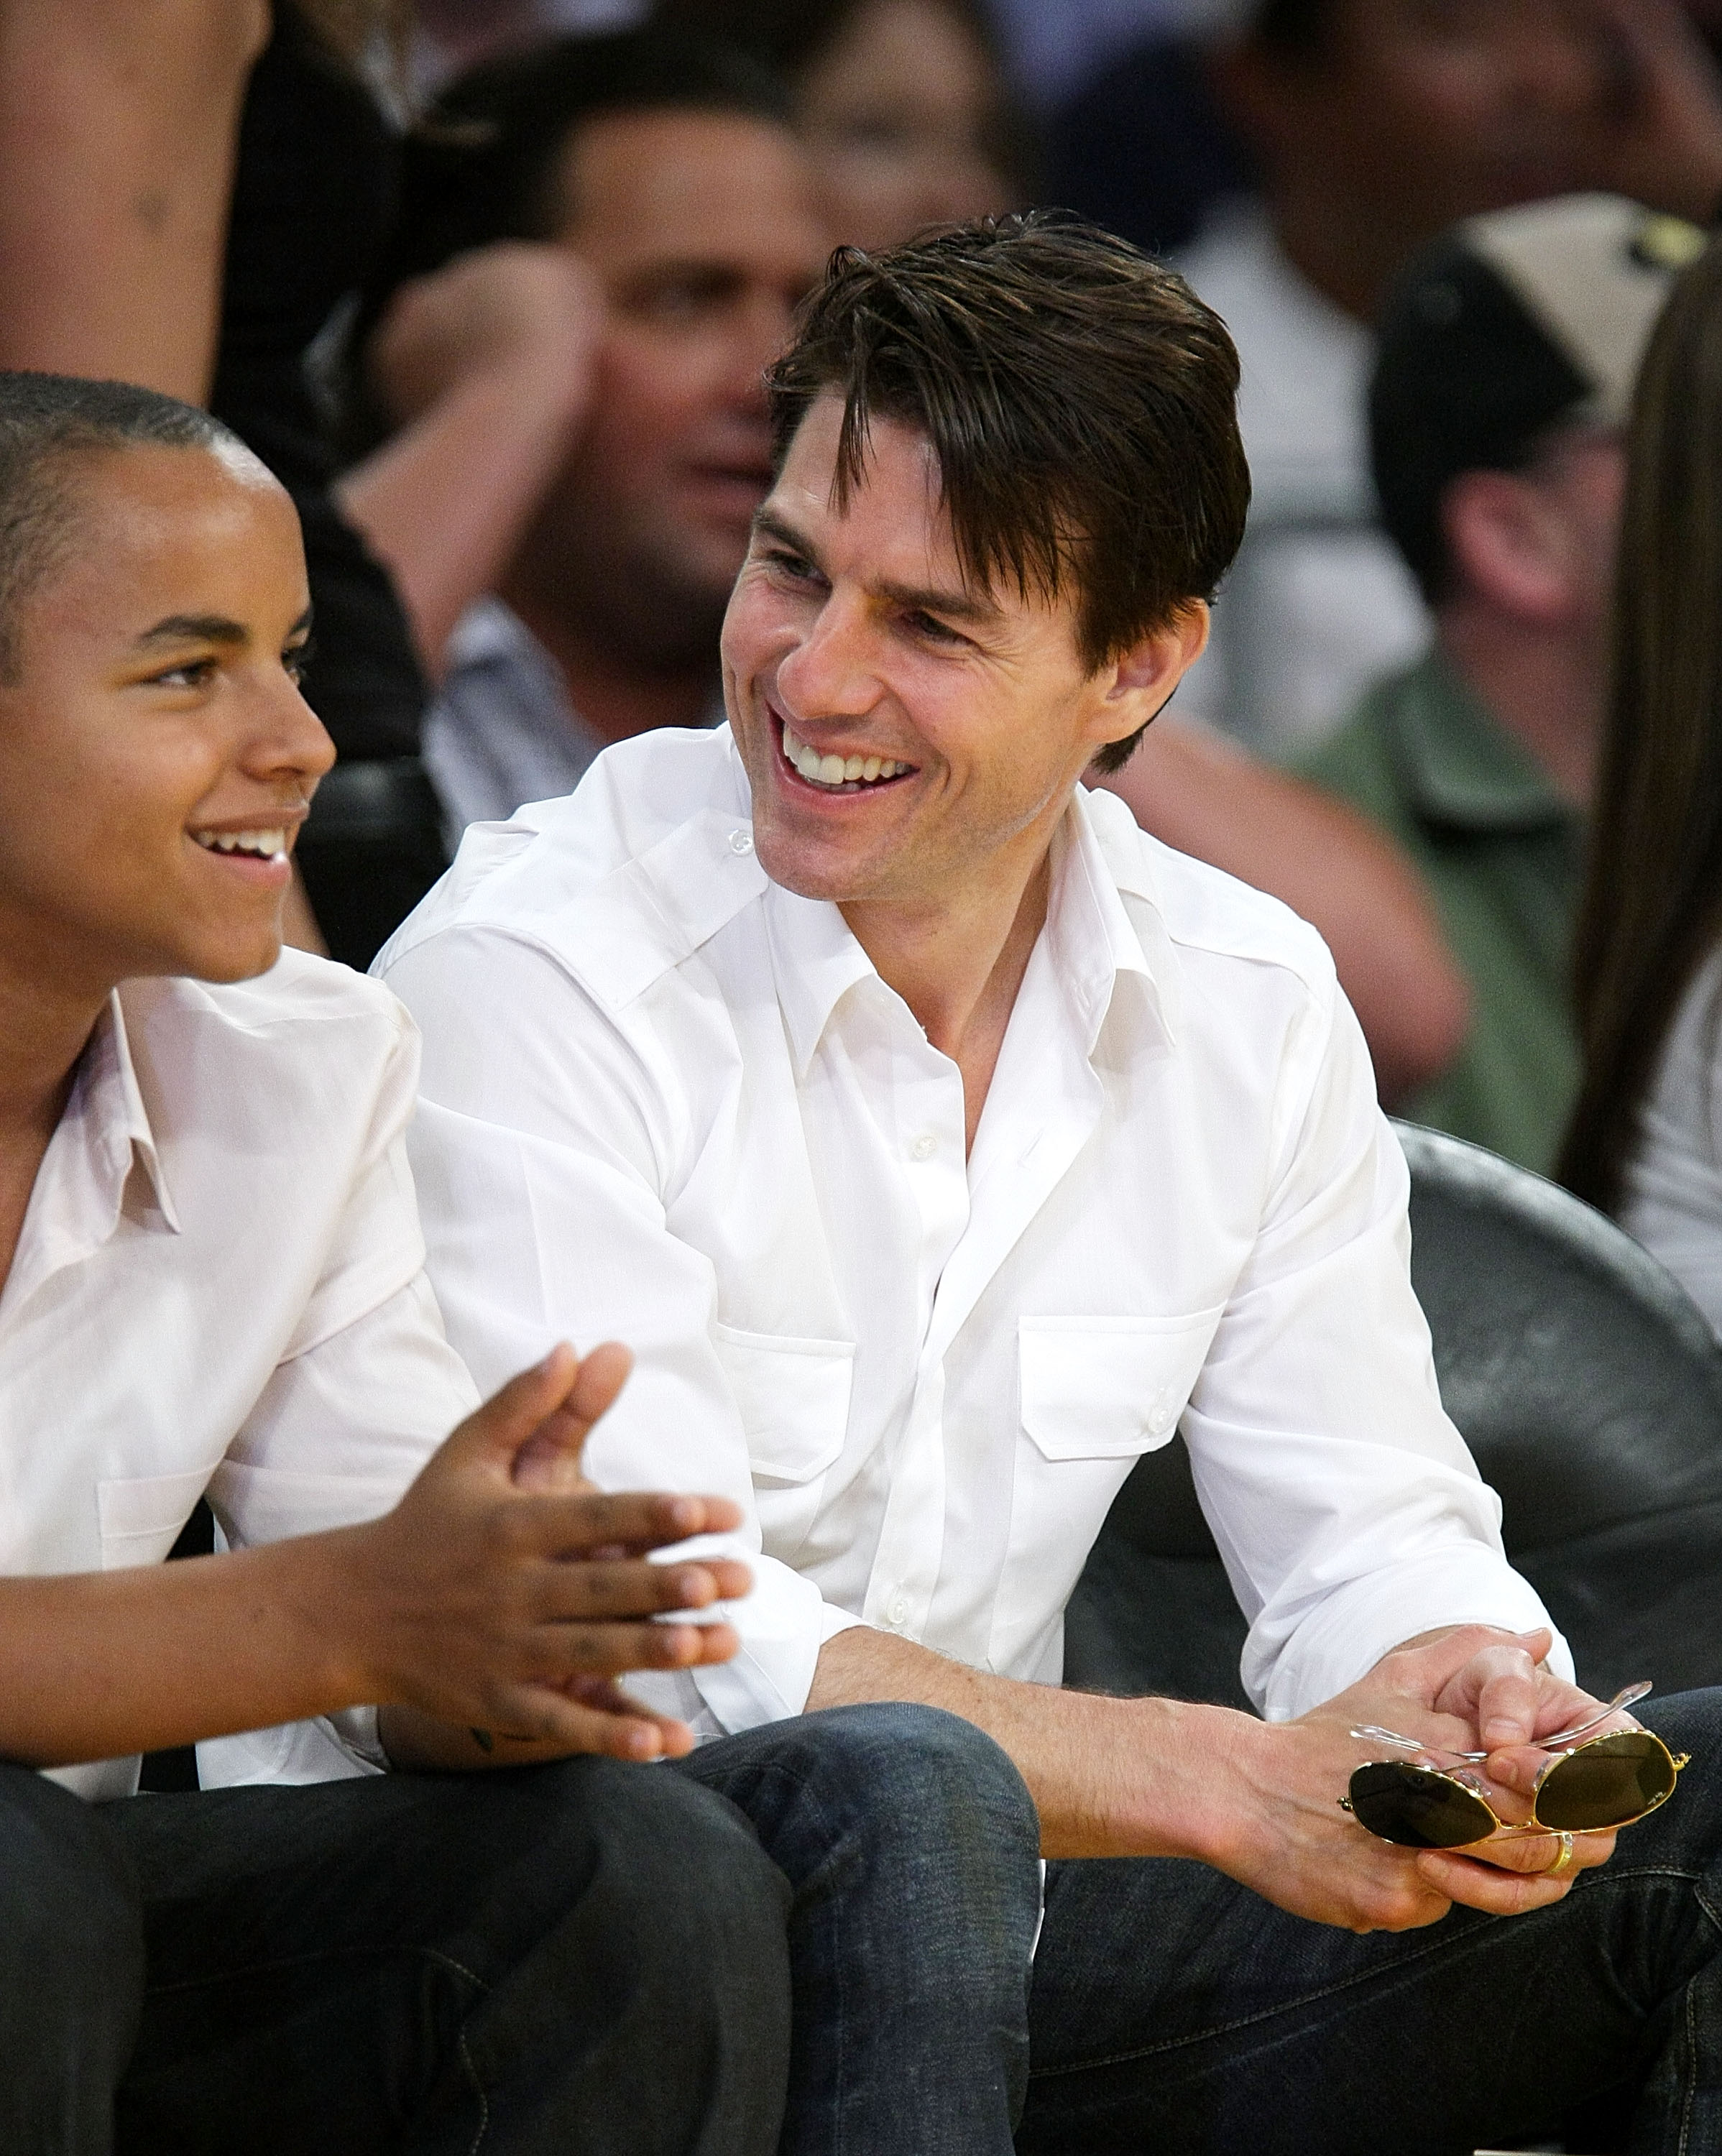 Tom Cruise Makes Rare Public Appearance with Son Connor